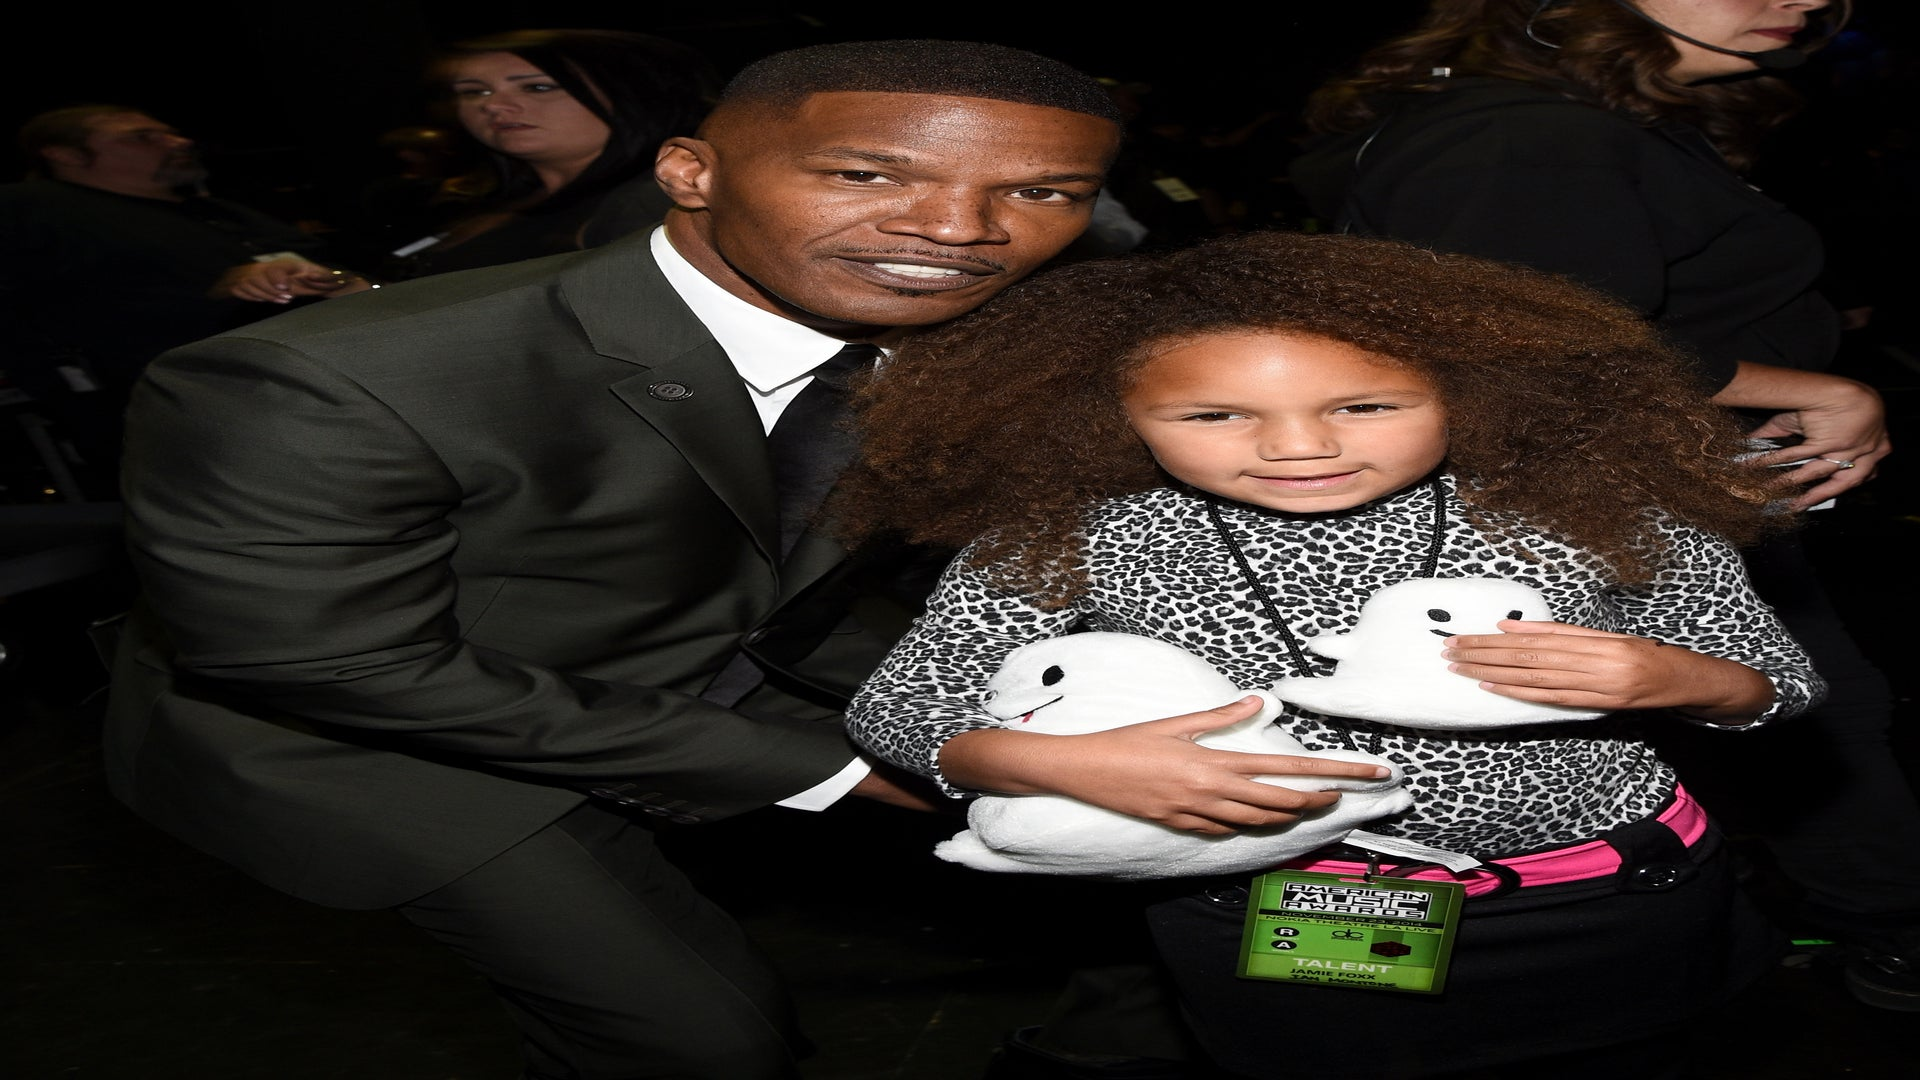 Jamie Foxx Tells His Daughters to Not Take the 'Back Seat' for Any Guy: 'Get Your Career, Do Your Thing'